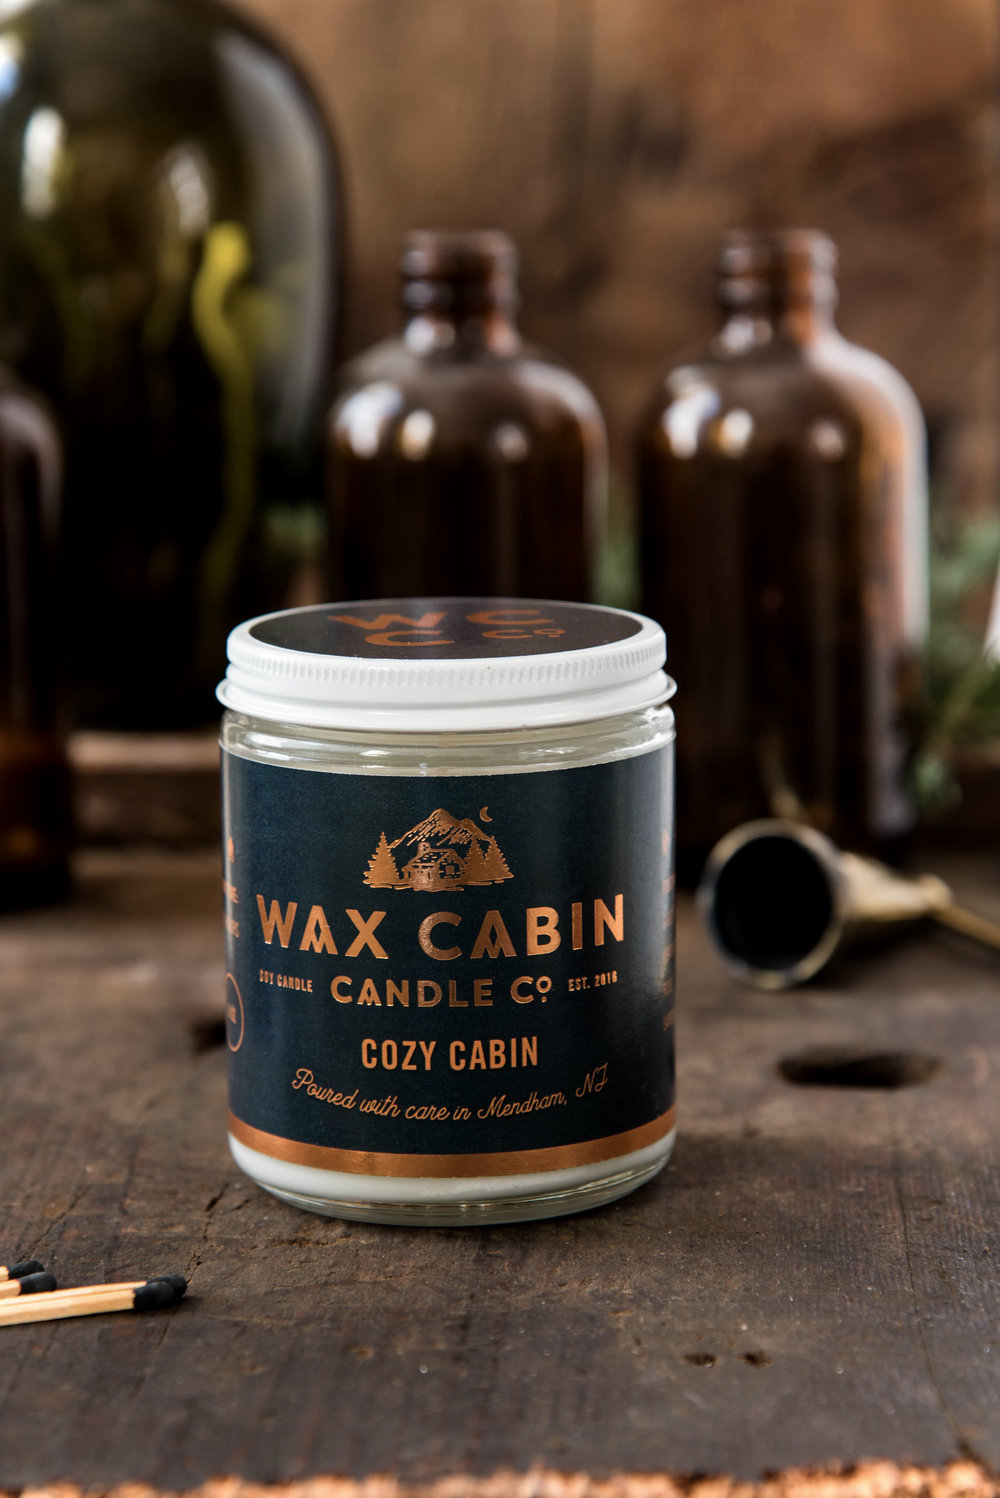 ROSE & IVY Journal Creating Cozy Festive Candles That Smell Like the Holidays Wax Cabin Candles